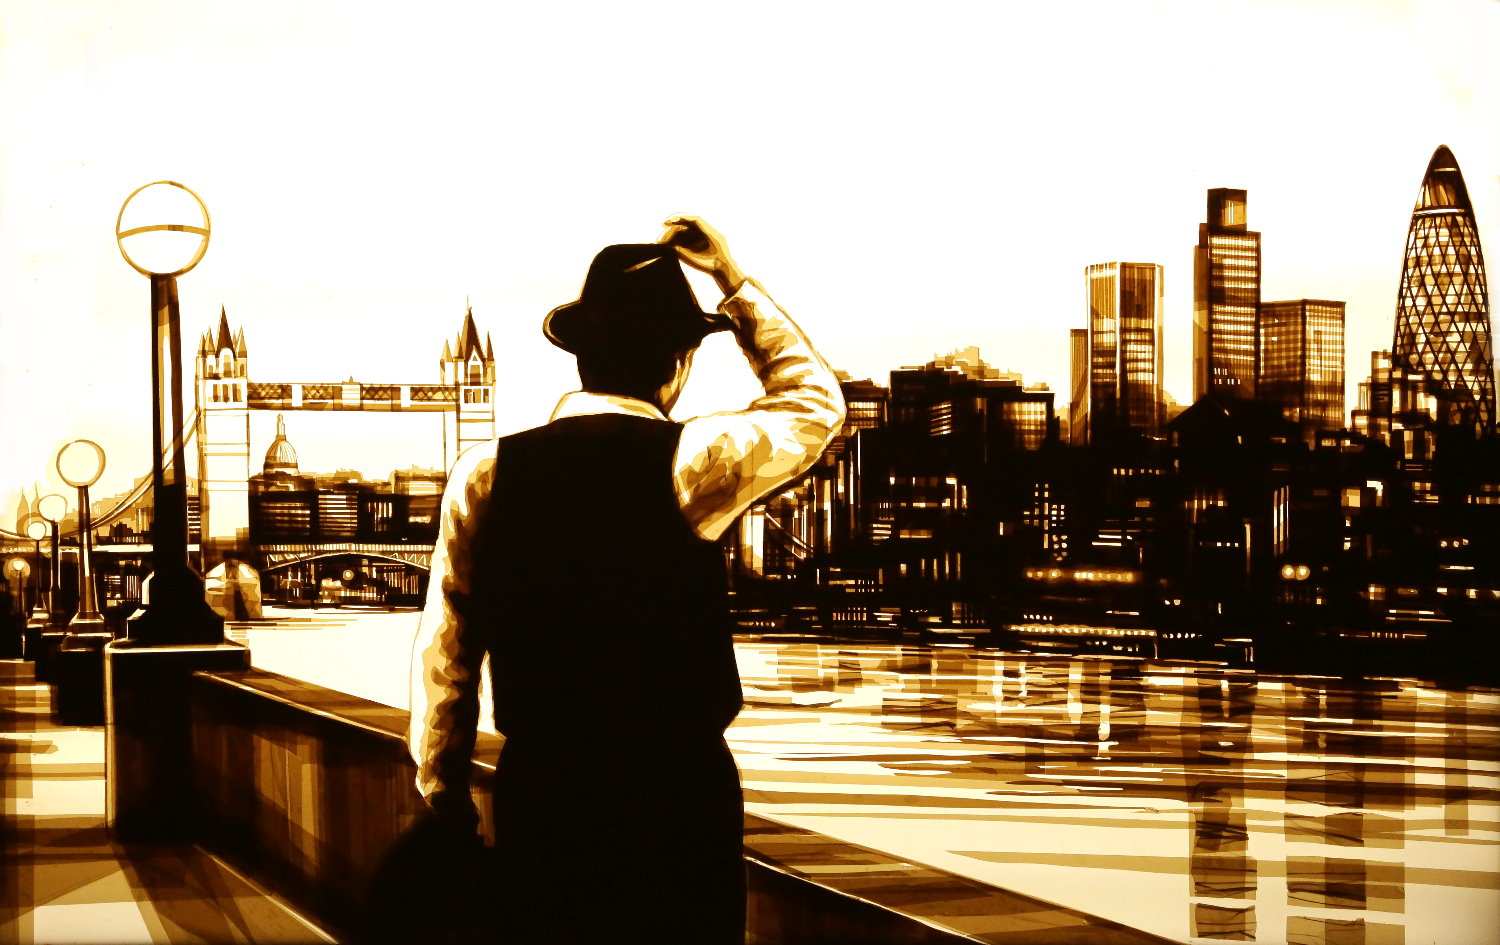 max zorn, tape art, max zorn London, scotch tape